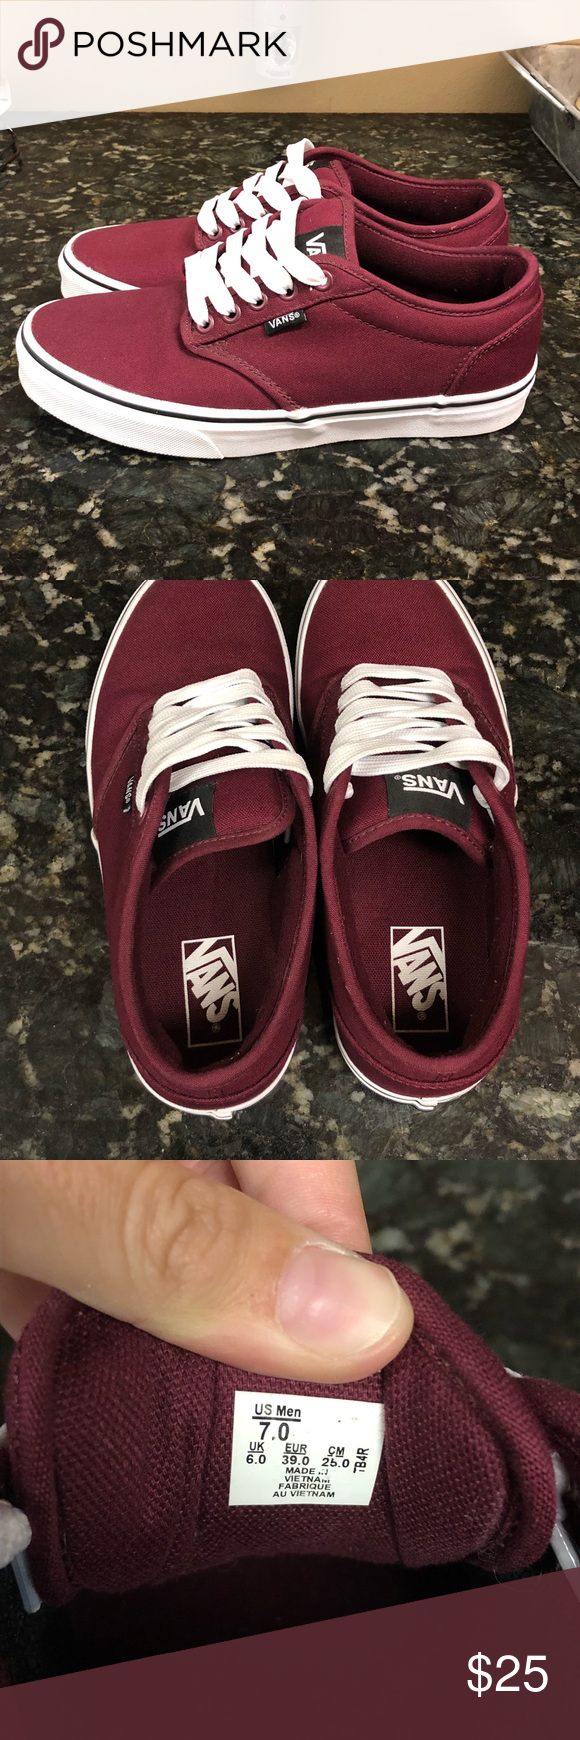 782db19fc5 Vans off the wall shoes These are maroon burgundy MENS size 7 shoes ...